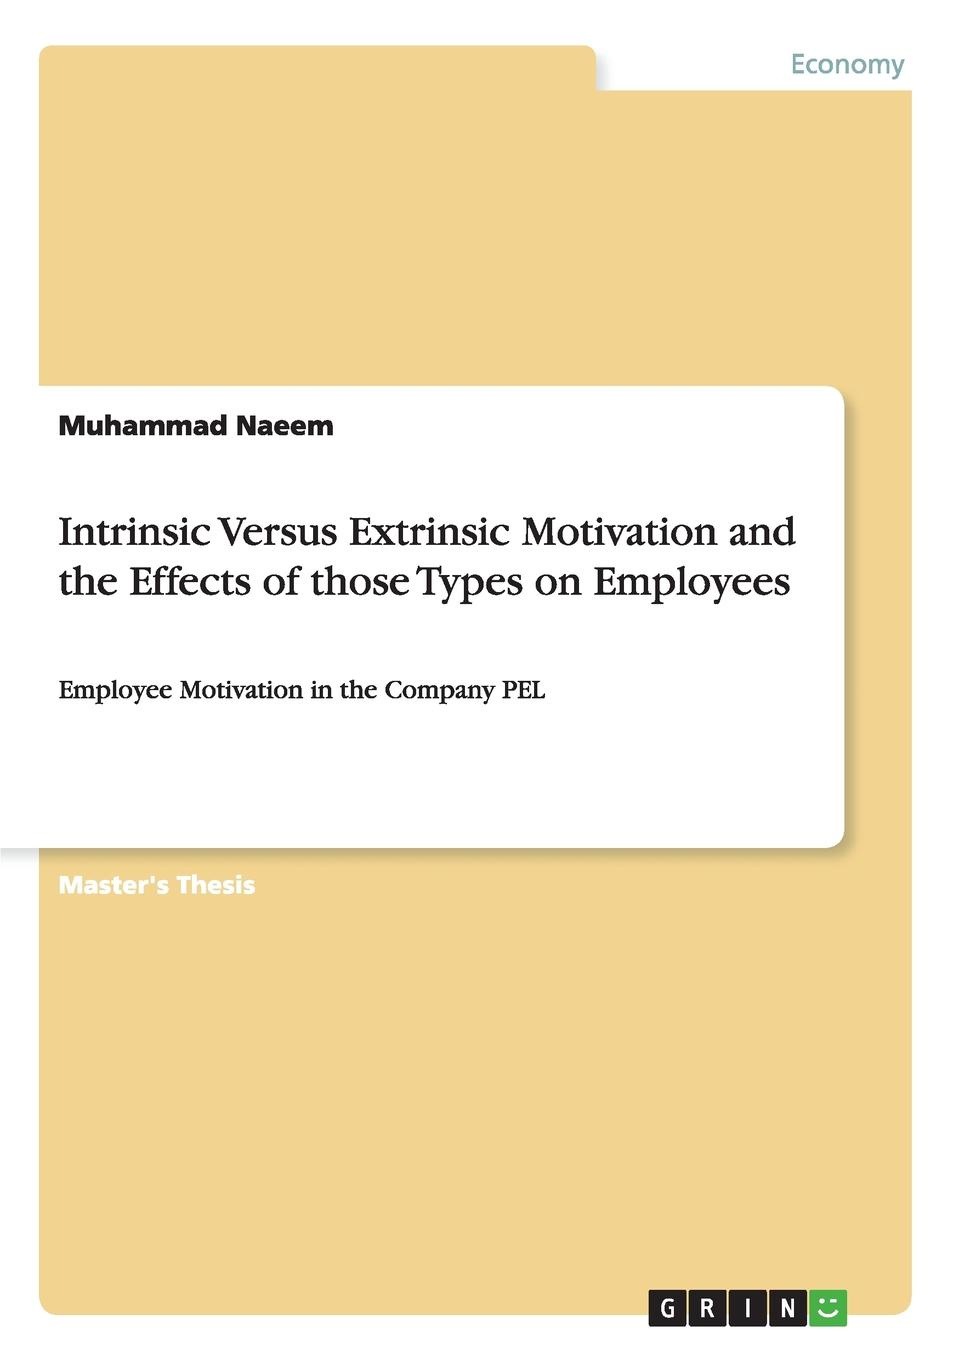 Muhammad Naeem Intrinsic Versus Extrinsic Motivation and the Effects of those Types on Employees muhammad naeem intrinsic versus extrinsic motivation and the effects of those types on employees